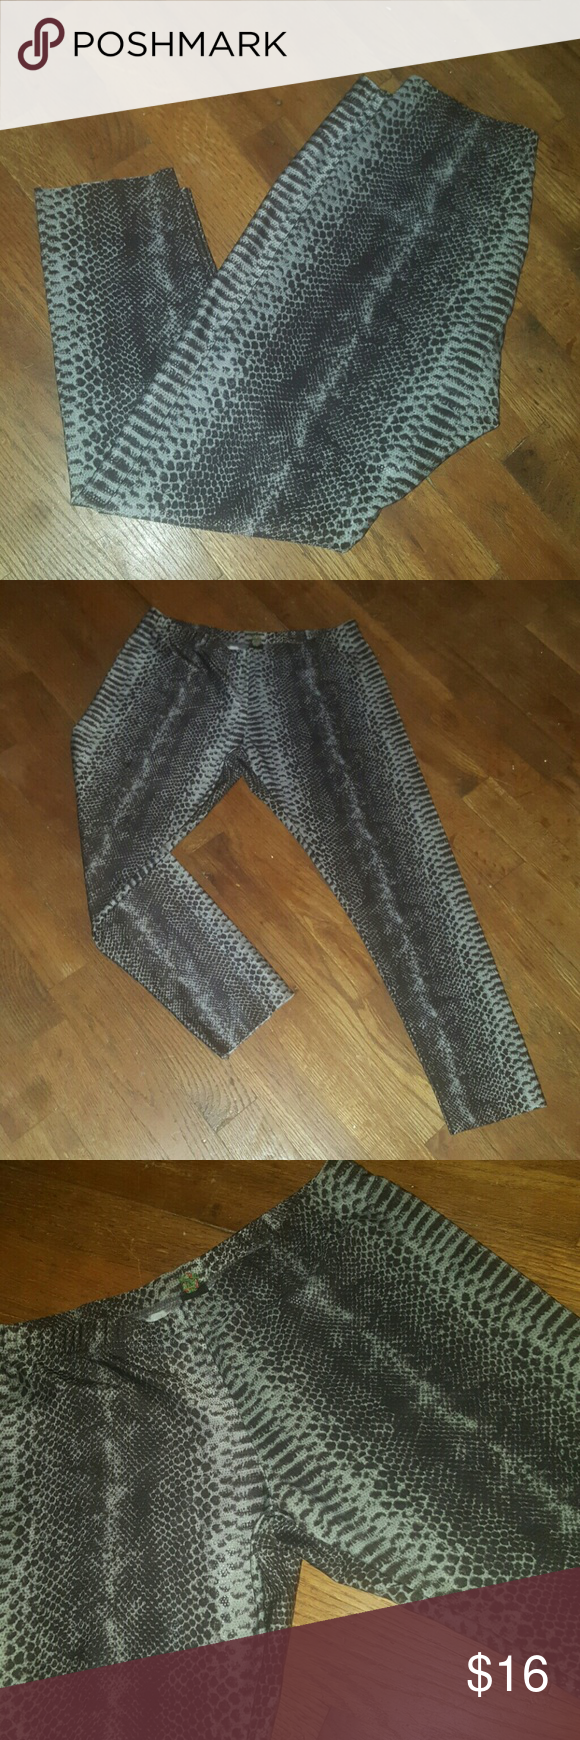 NEW!!!! Animal Skin Leggings Capri length snake skin leggings Sz M Pants Leggings